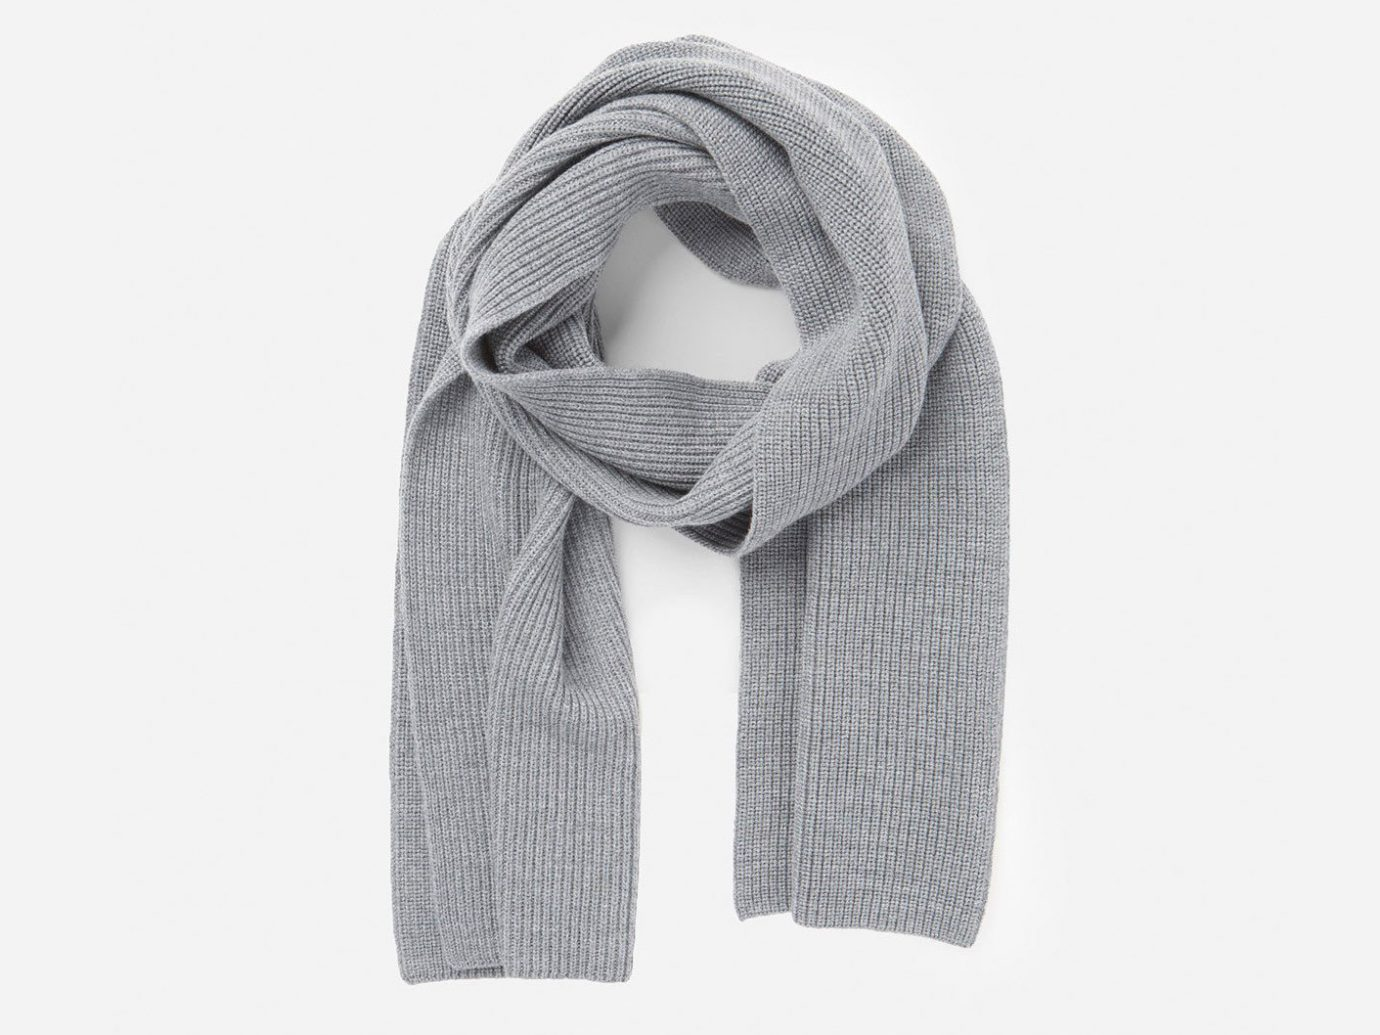 Style + Design clothing scarf wearing fashion accessory pattern wool Design sleeve textile